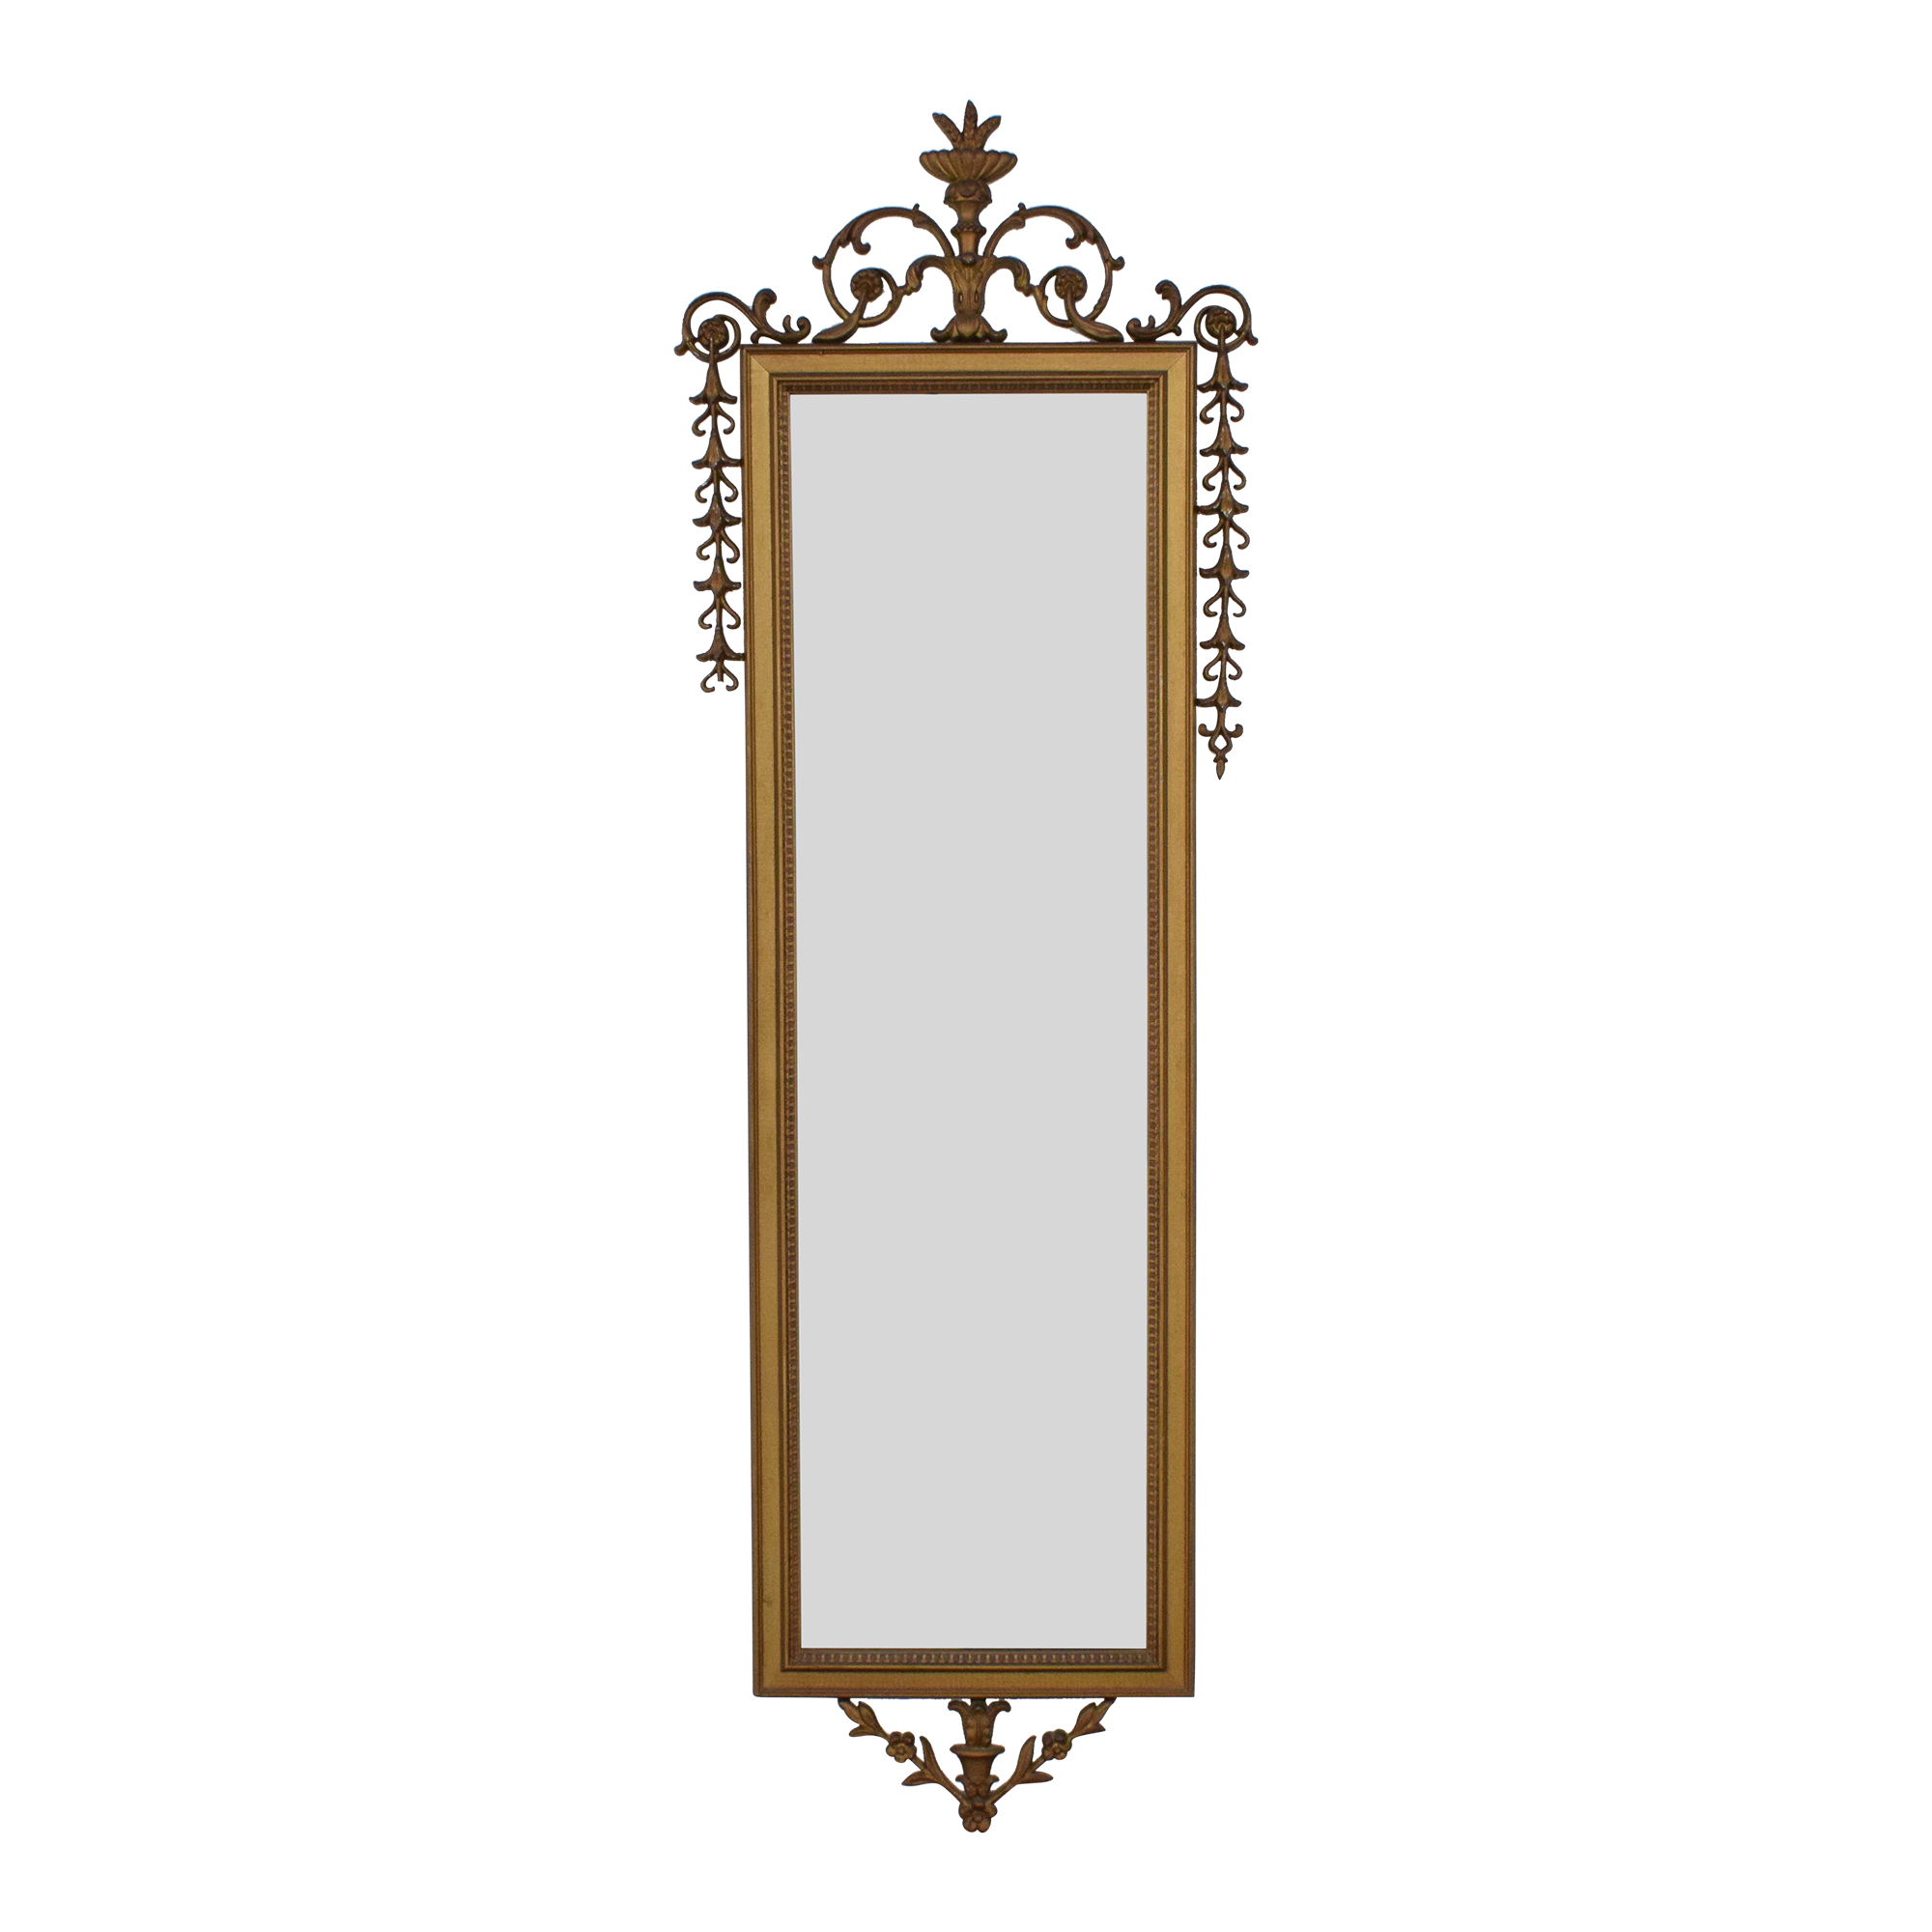 Vintage Style Decorative Mirror / Decor